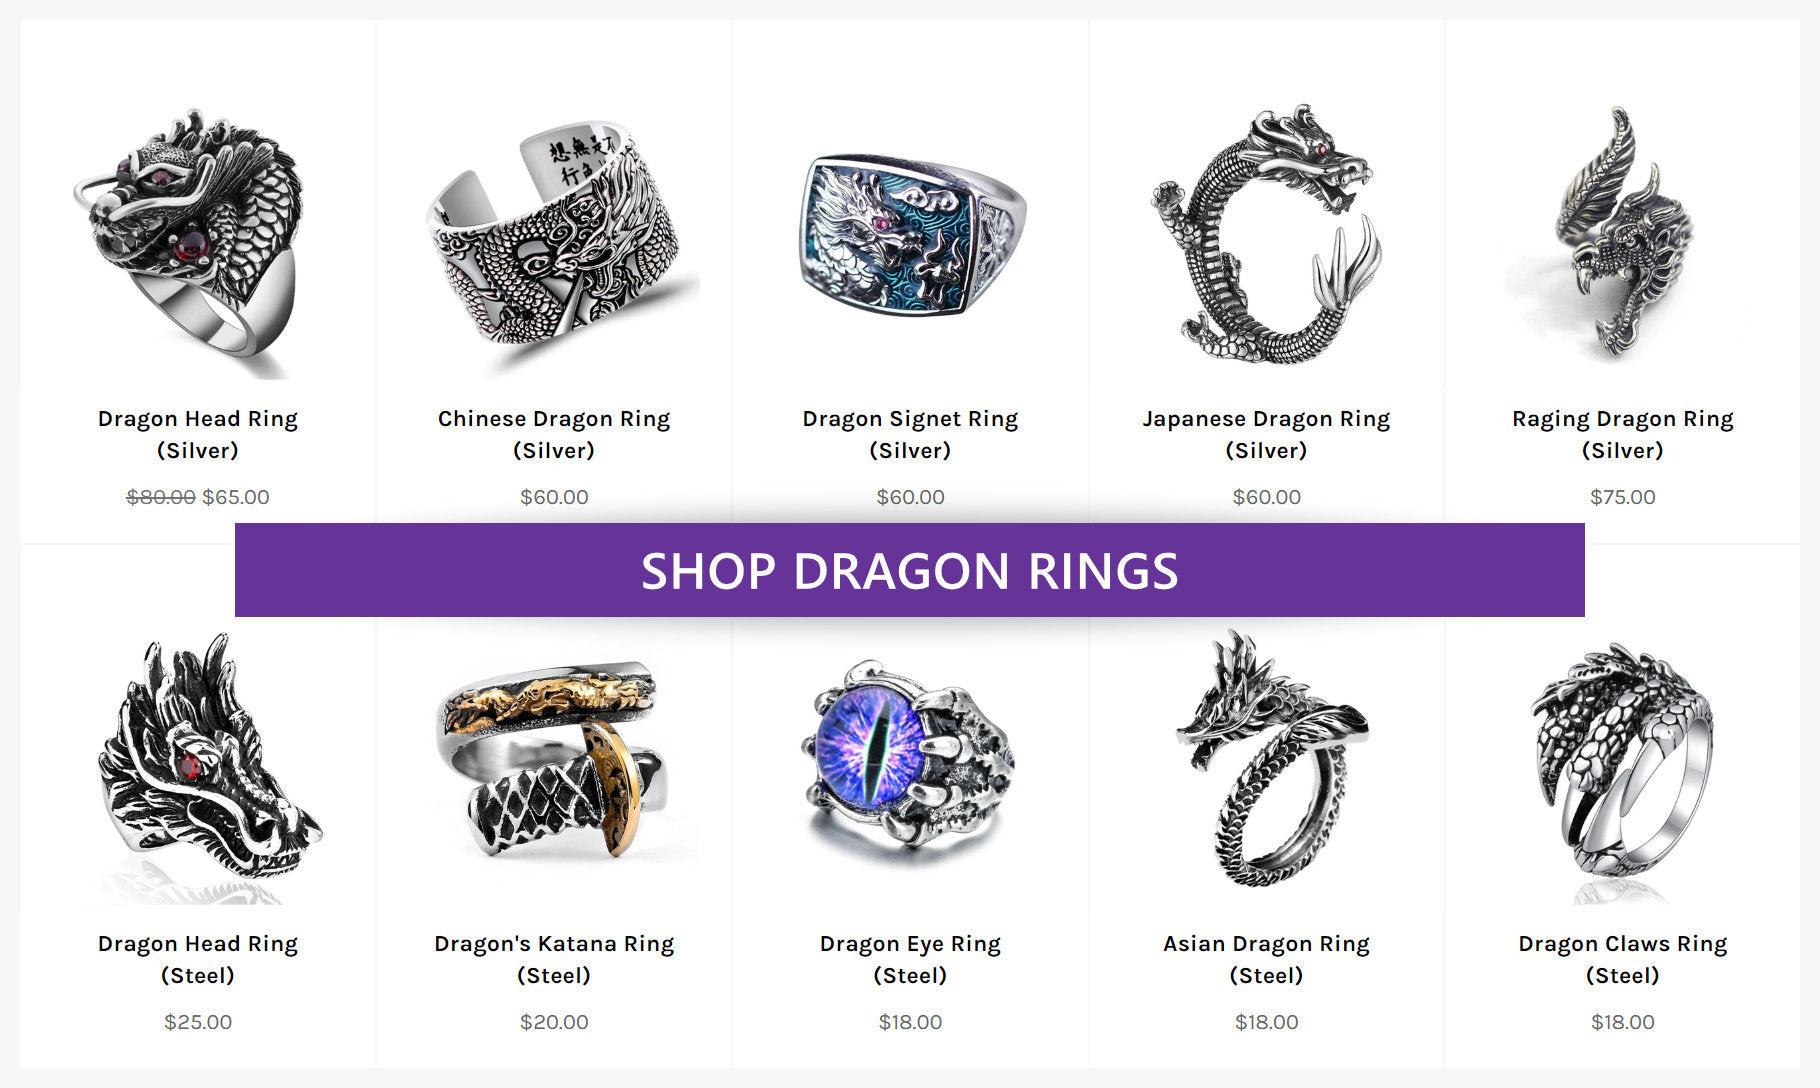 A collection of Dragon Rings